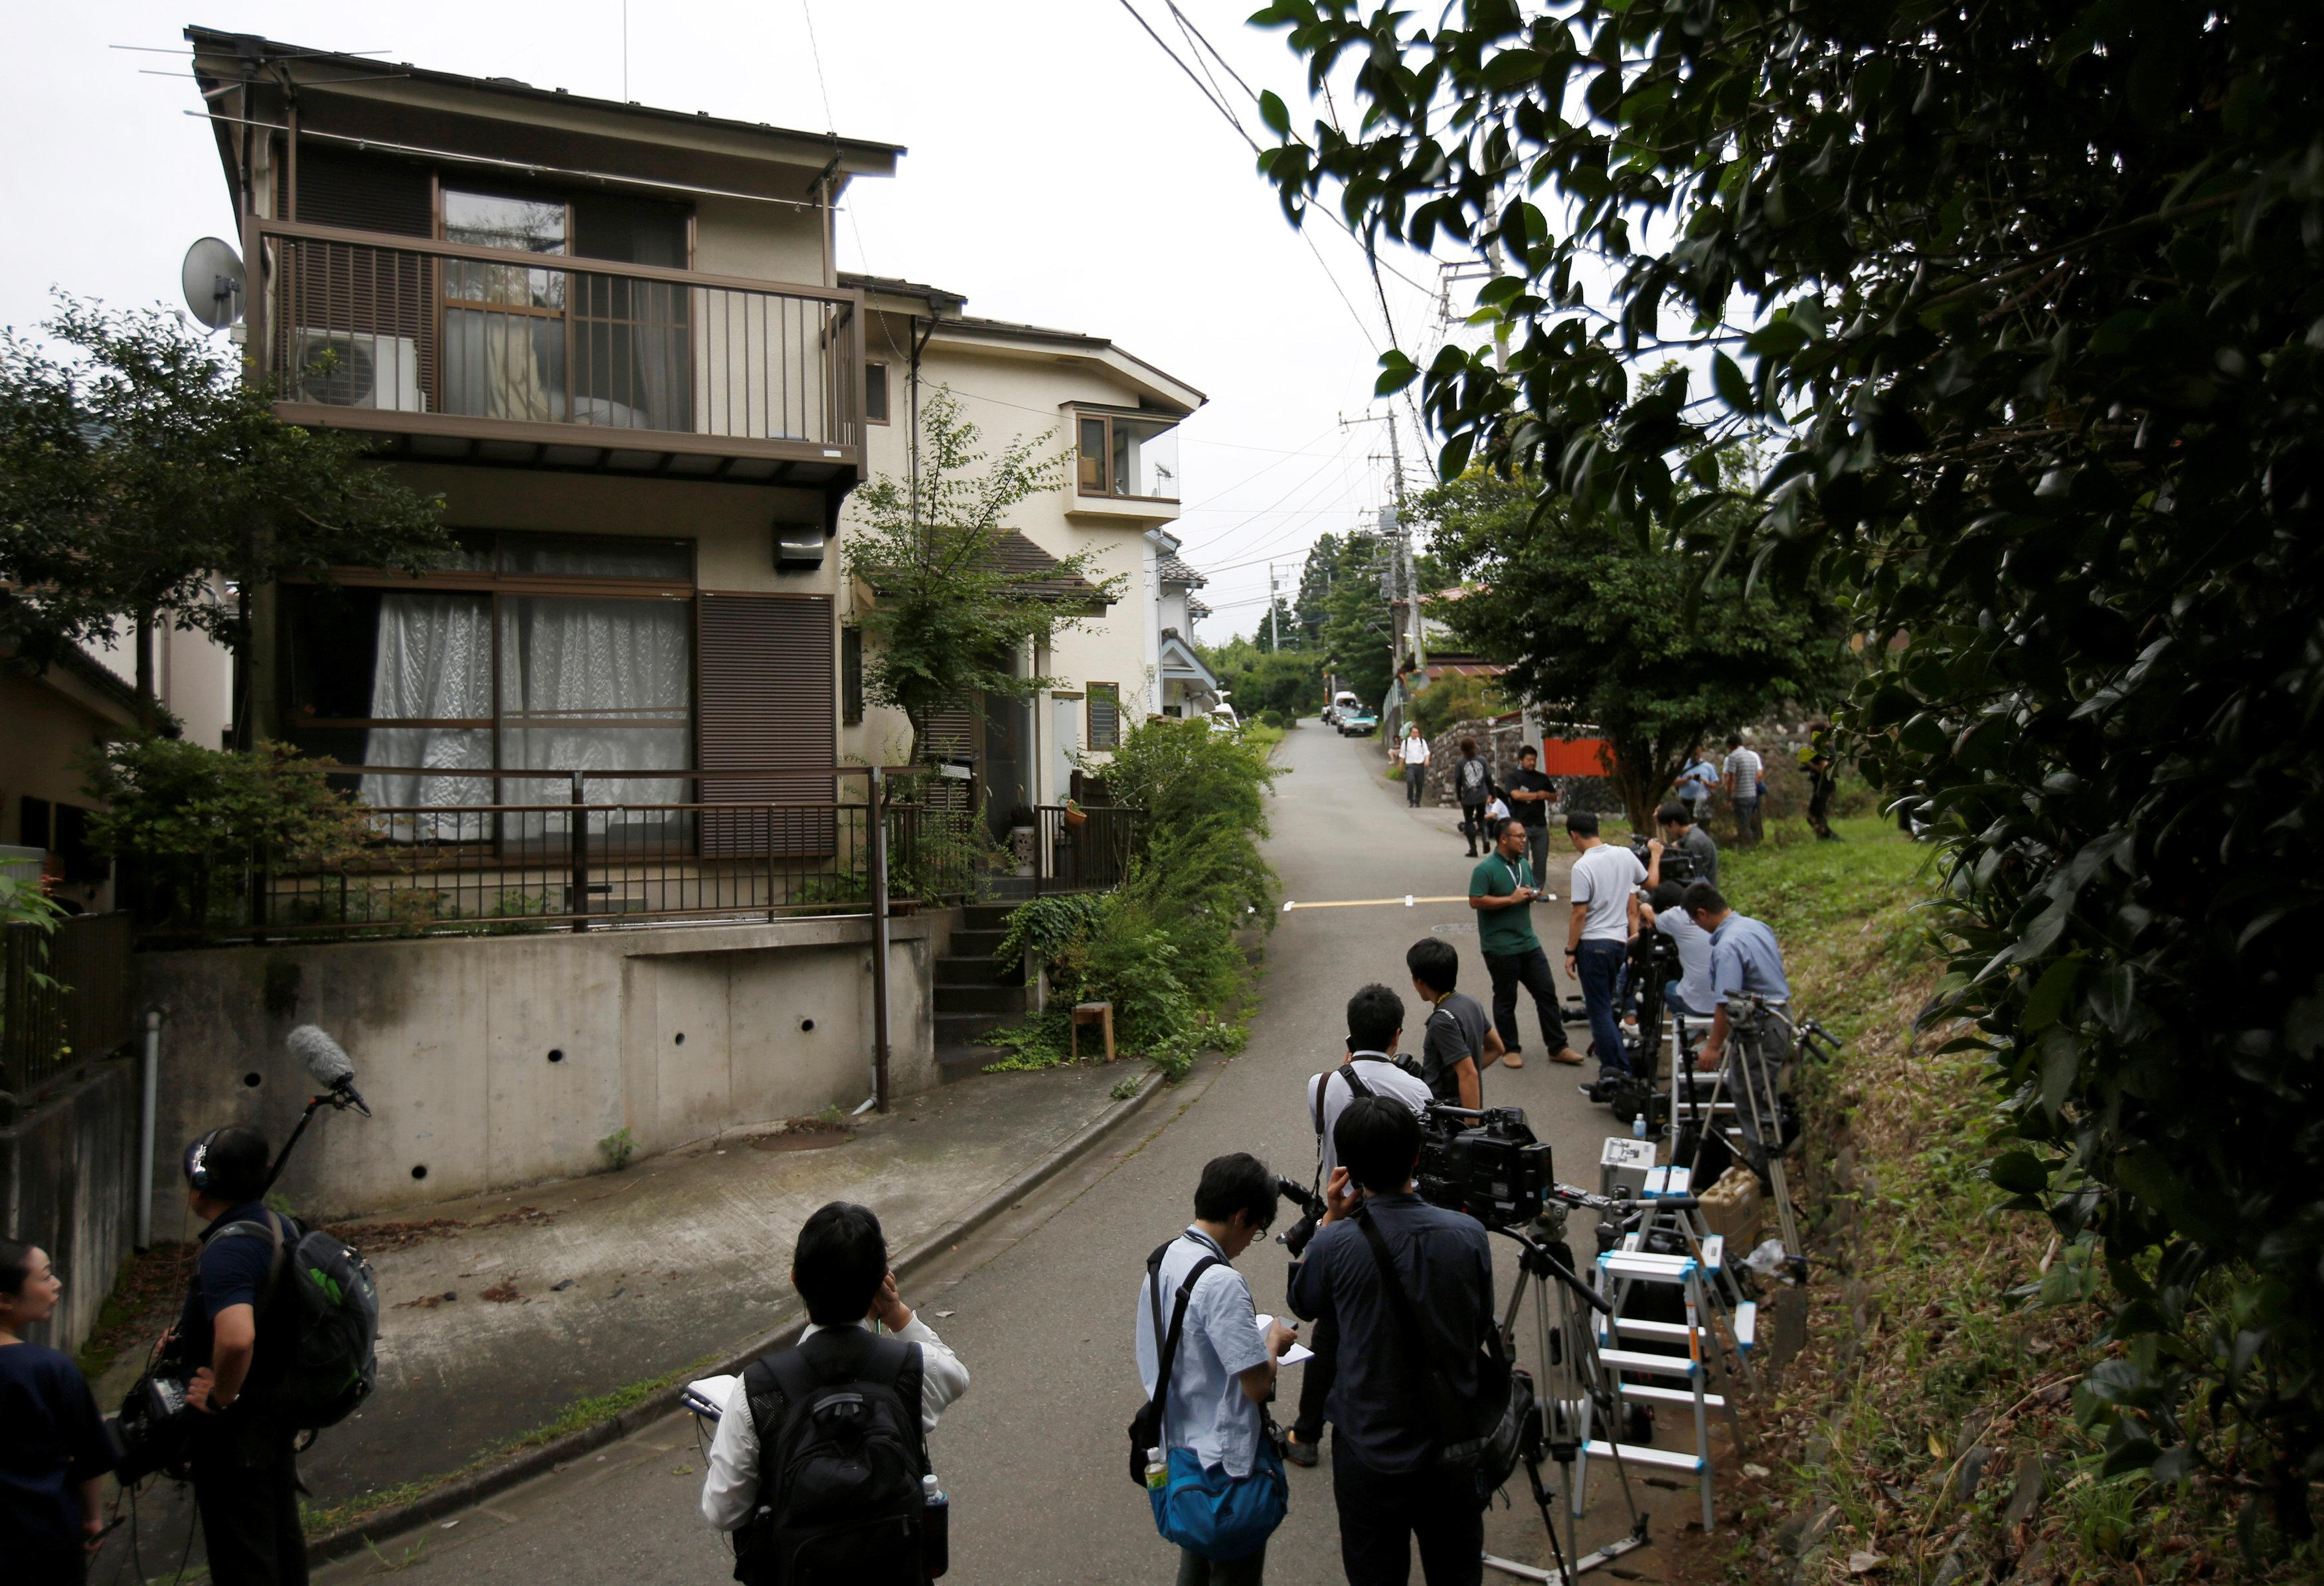 Japan knife attacker's home